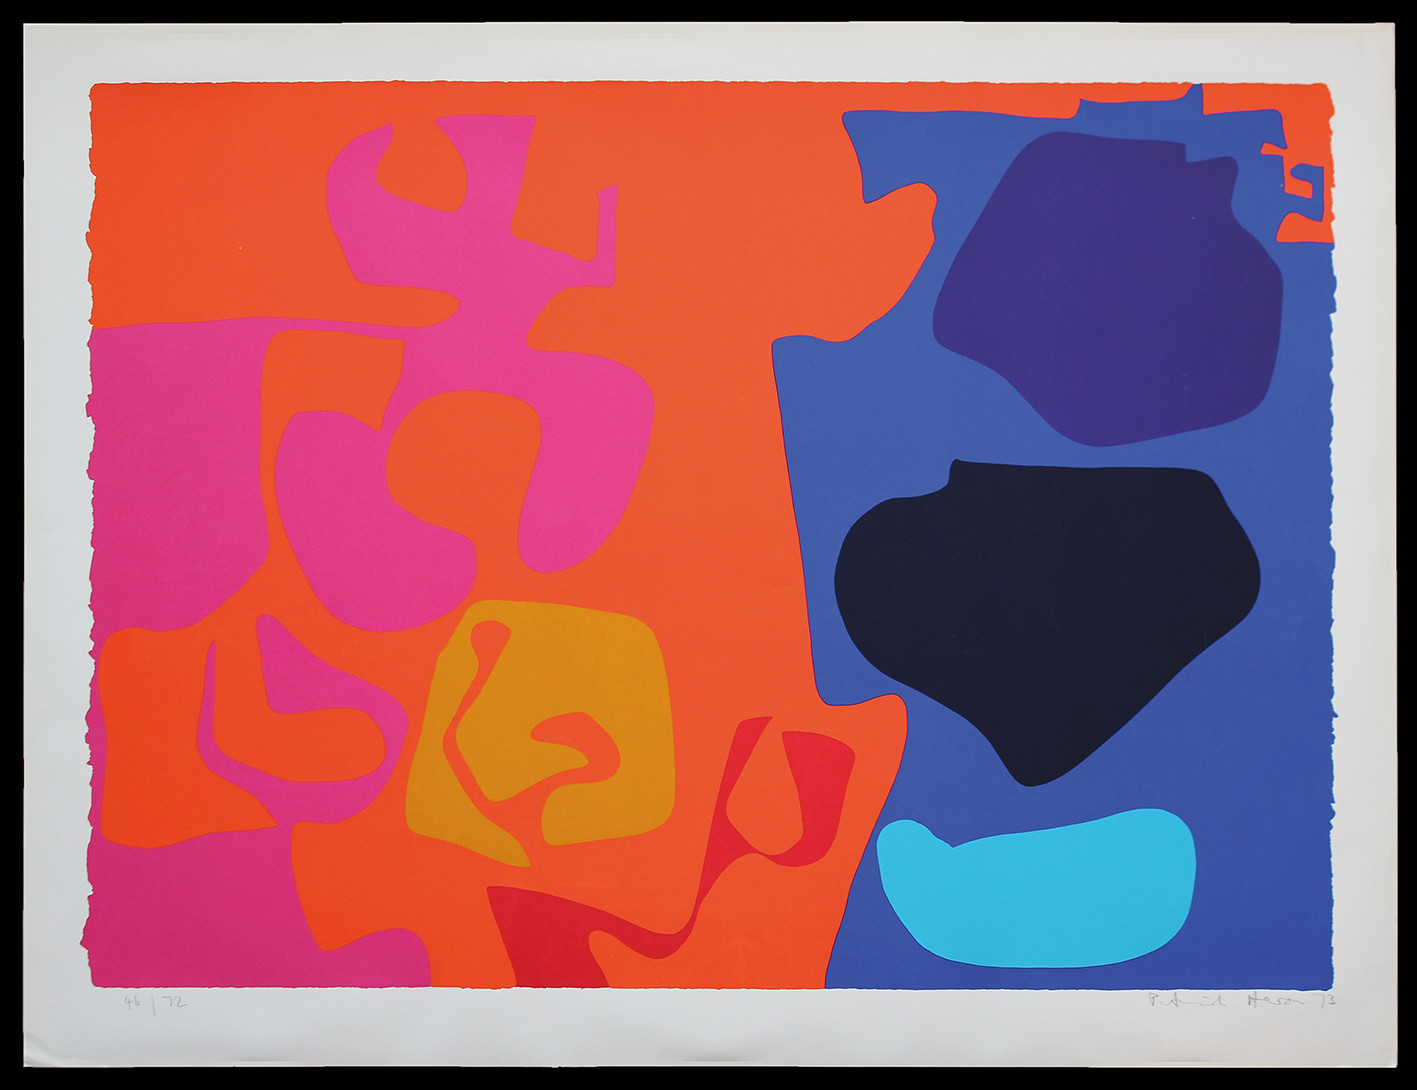 "<span class=""link fancybox-details-link""><a href=""/artists/93-patrick-heron-cbe/works/4931-patrick-heron-cbe-january-1973-8-1973/"">View Detail Page</a></span><div class=""artist""><strong>Patrick Heron CBE</strong></div> 1920 – 99 <div class=""title""><em>January 1973 : 8</em>, 1973</div> <div class=""signed_and_dated"">signed, dated and numbered in pencil</div> <div class=""medium"">silkscreen print in colours on wove paper, with full margins</div> <div class=""dimensions"">Image size: 22 7/8 x 28 inches<br /> Sheet size: 27 1/2 x 36 in</div> <div class=""edition_details"">Edition 46 of 72</div><div class=""copyright_line"">© The Estate of Patrick Heron</div>"